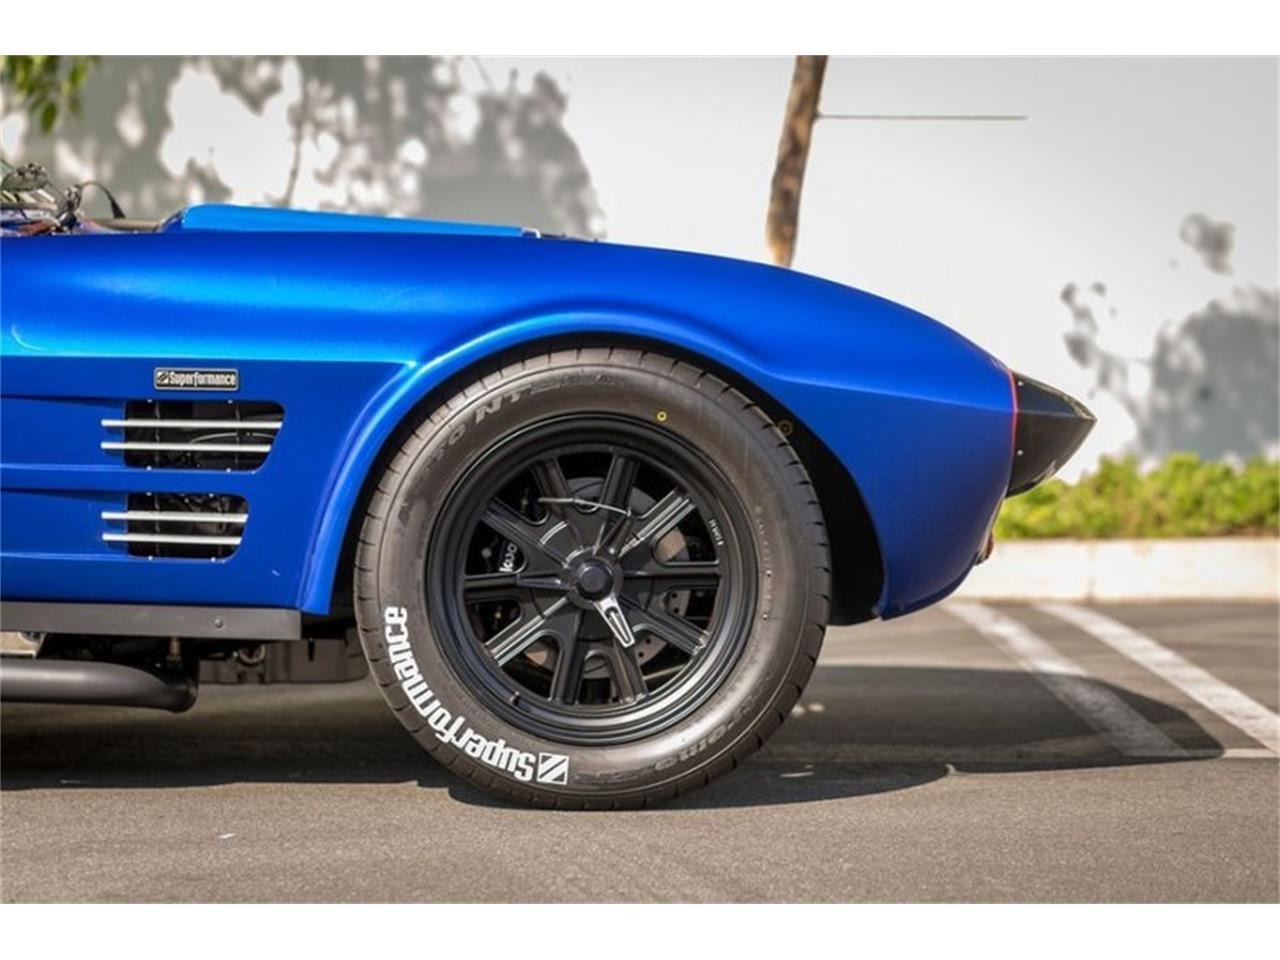 1963 Superformance Corvette Grand Sport for sale in Irvine, CA – photo 21